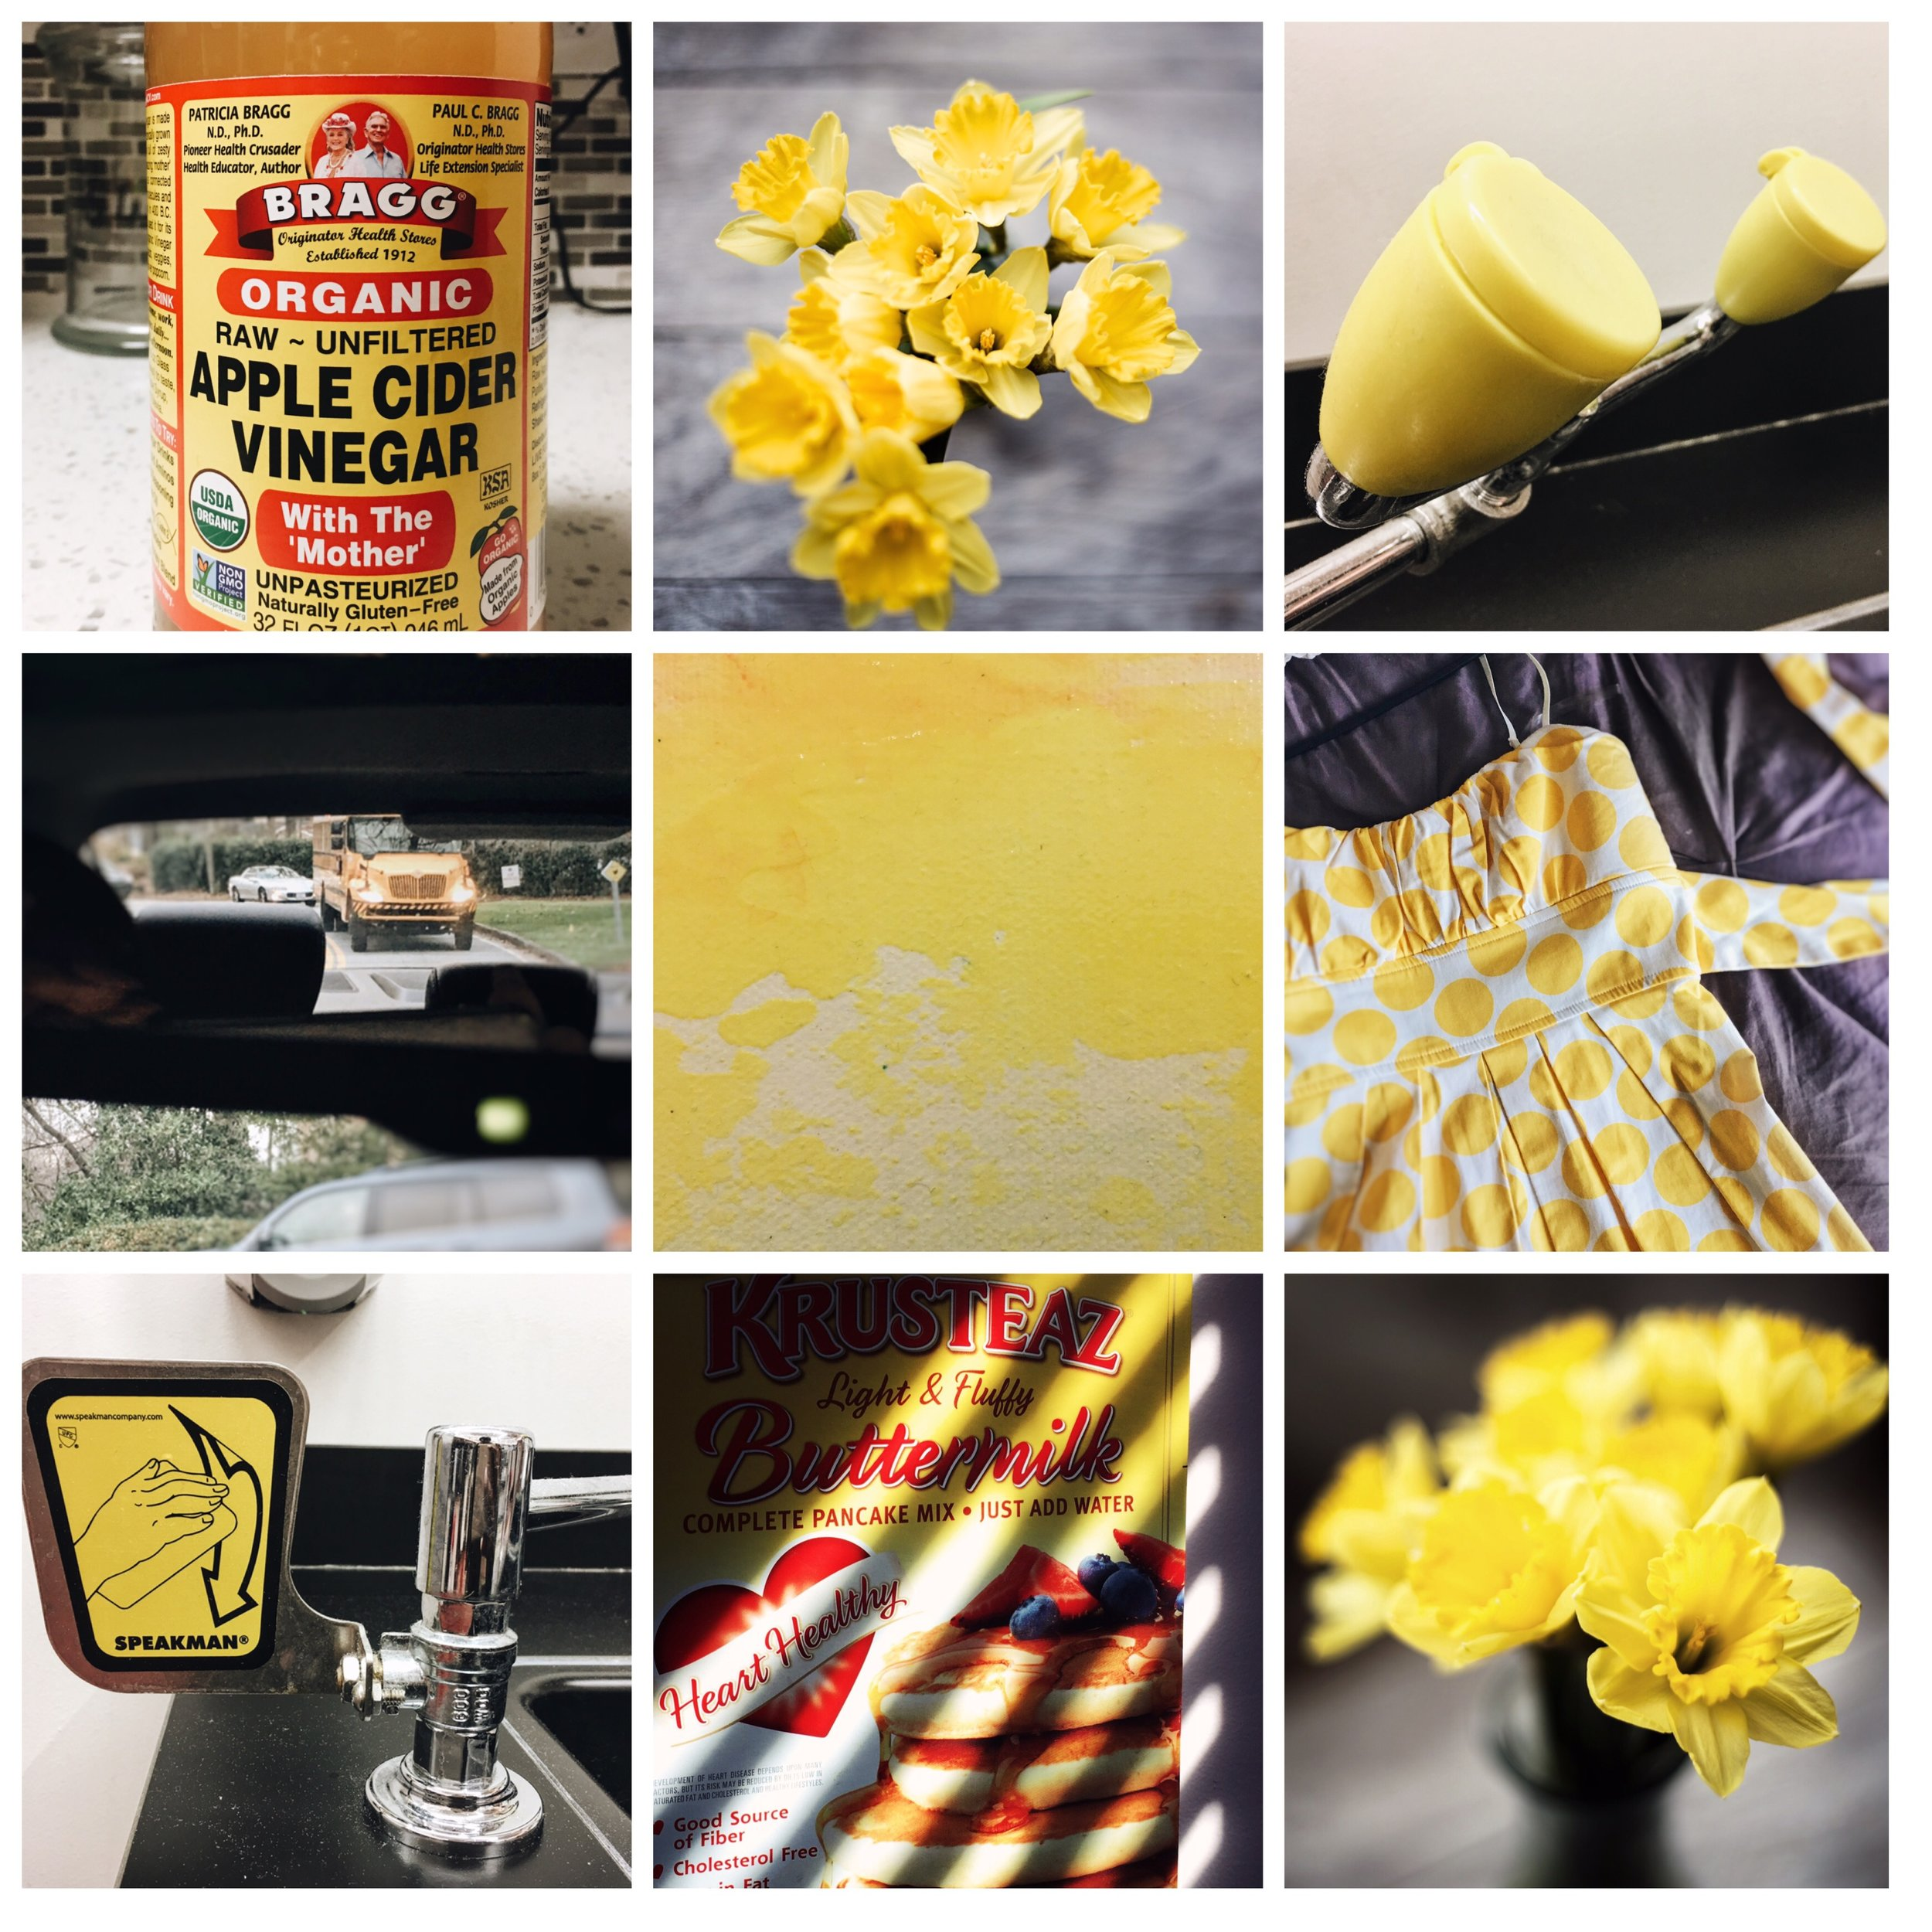 Monthly-Color-Challenge-January-Yellow-by-Chanel-G-Photography